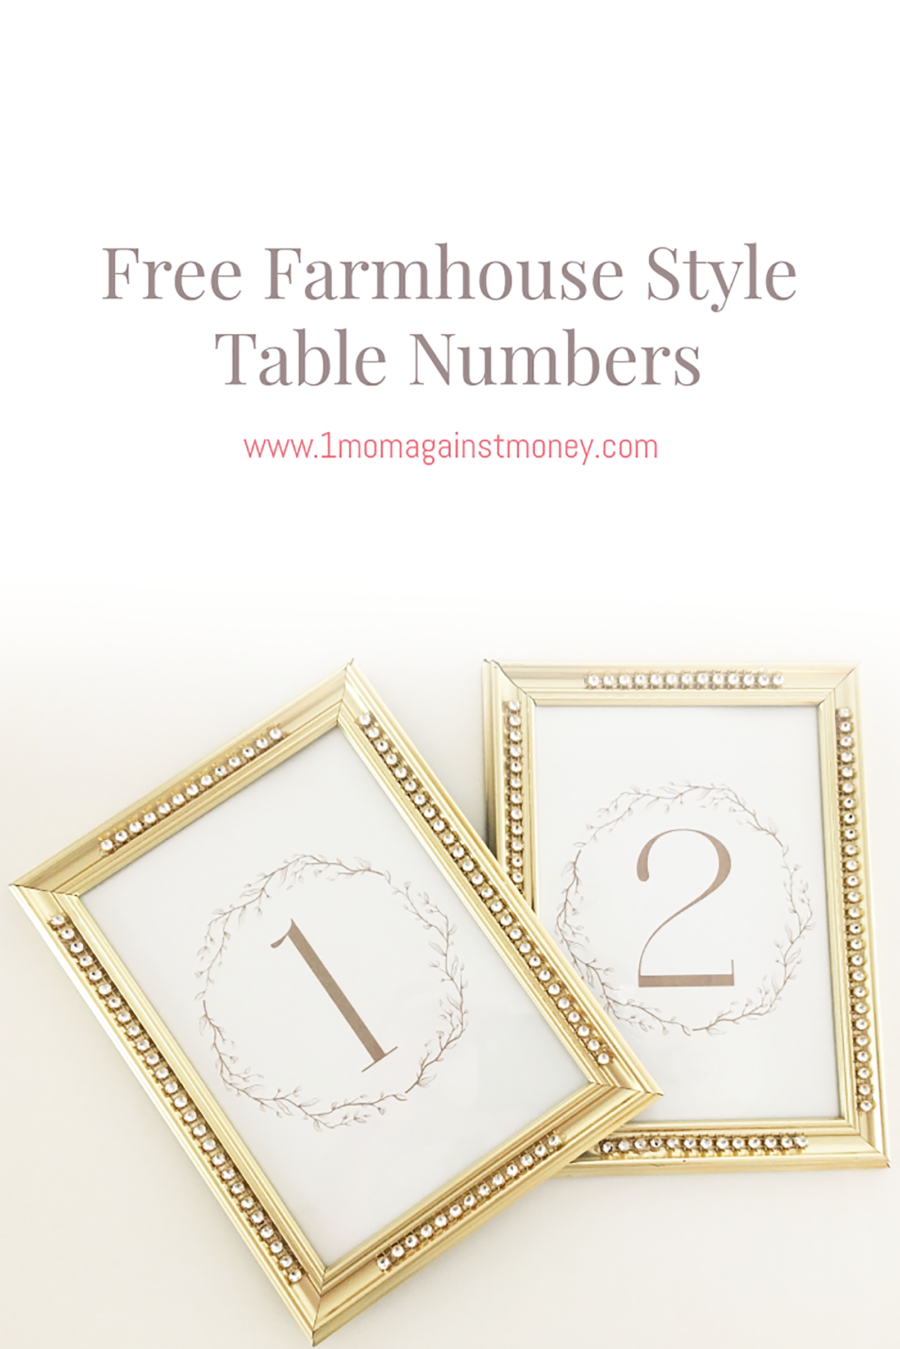 Farmhouse Style Table Numbers